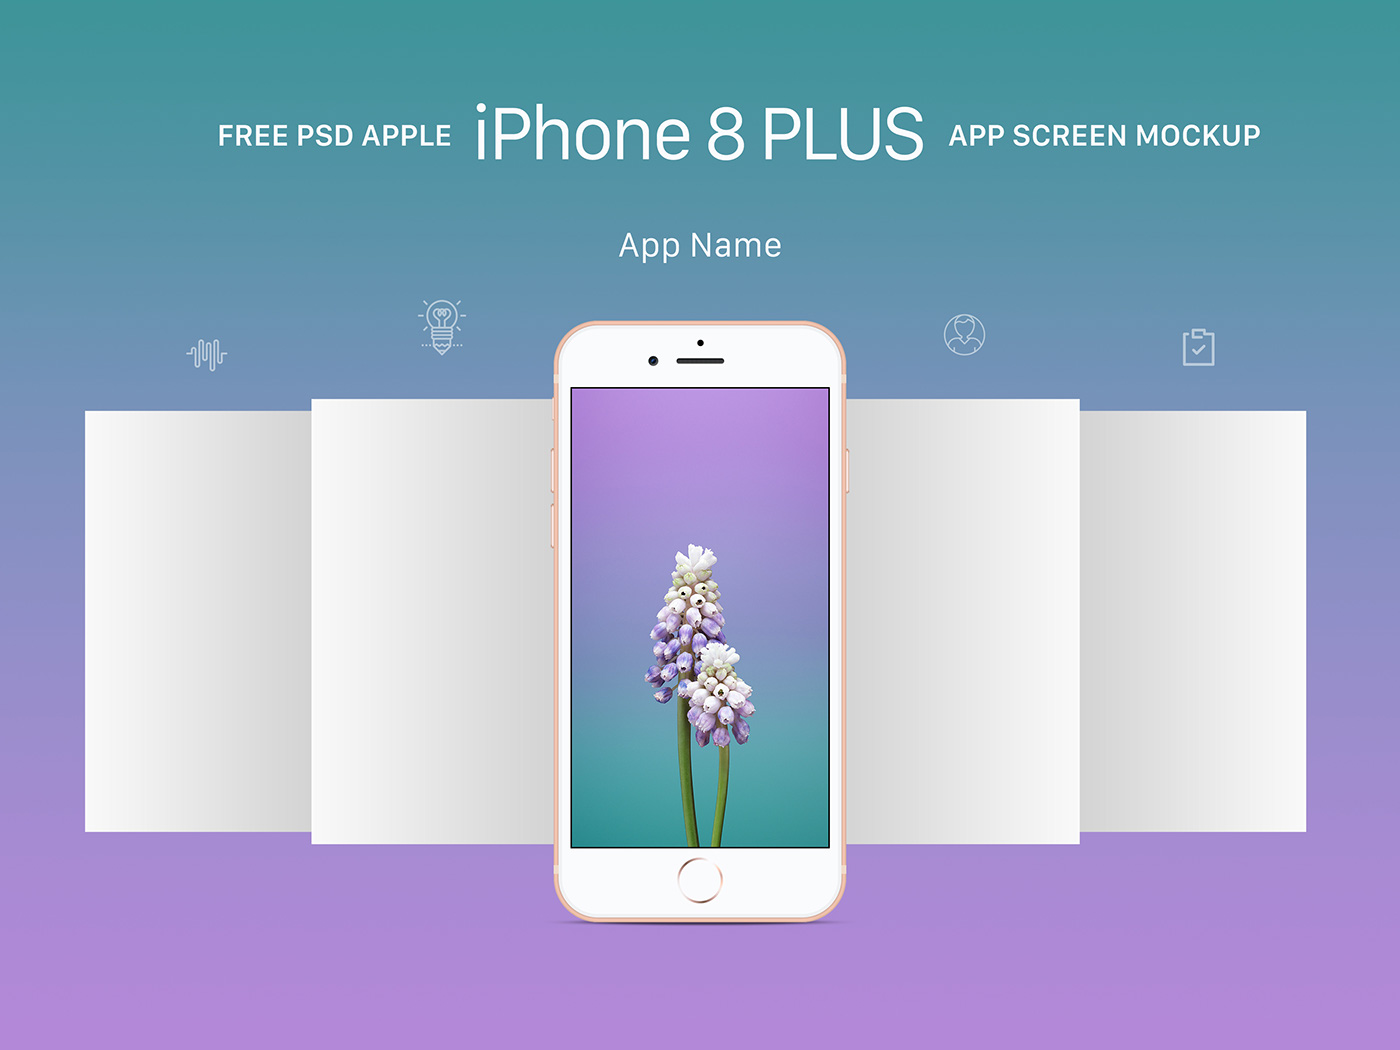 Free Apple Iphone 8 Plus App Screen Mockup Psd On Behance